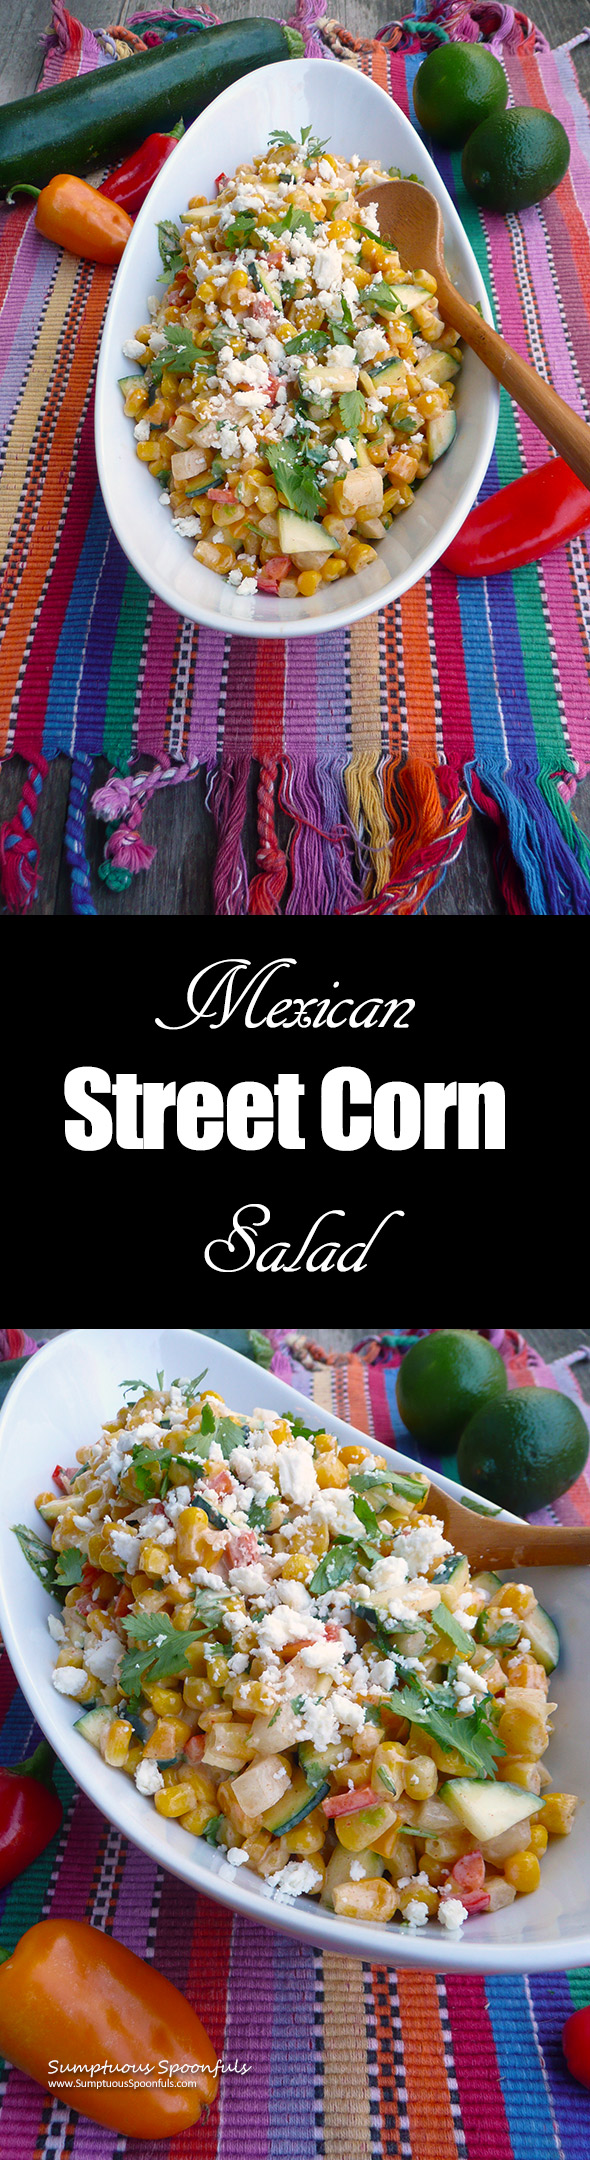 Mexican Street Corn Salad w/Zucchini ~Sumptuous Spoonfuls #easy #Mexican #salad #recipe